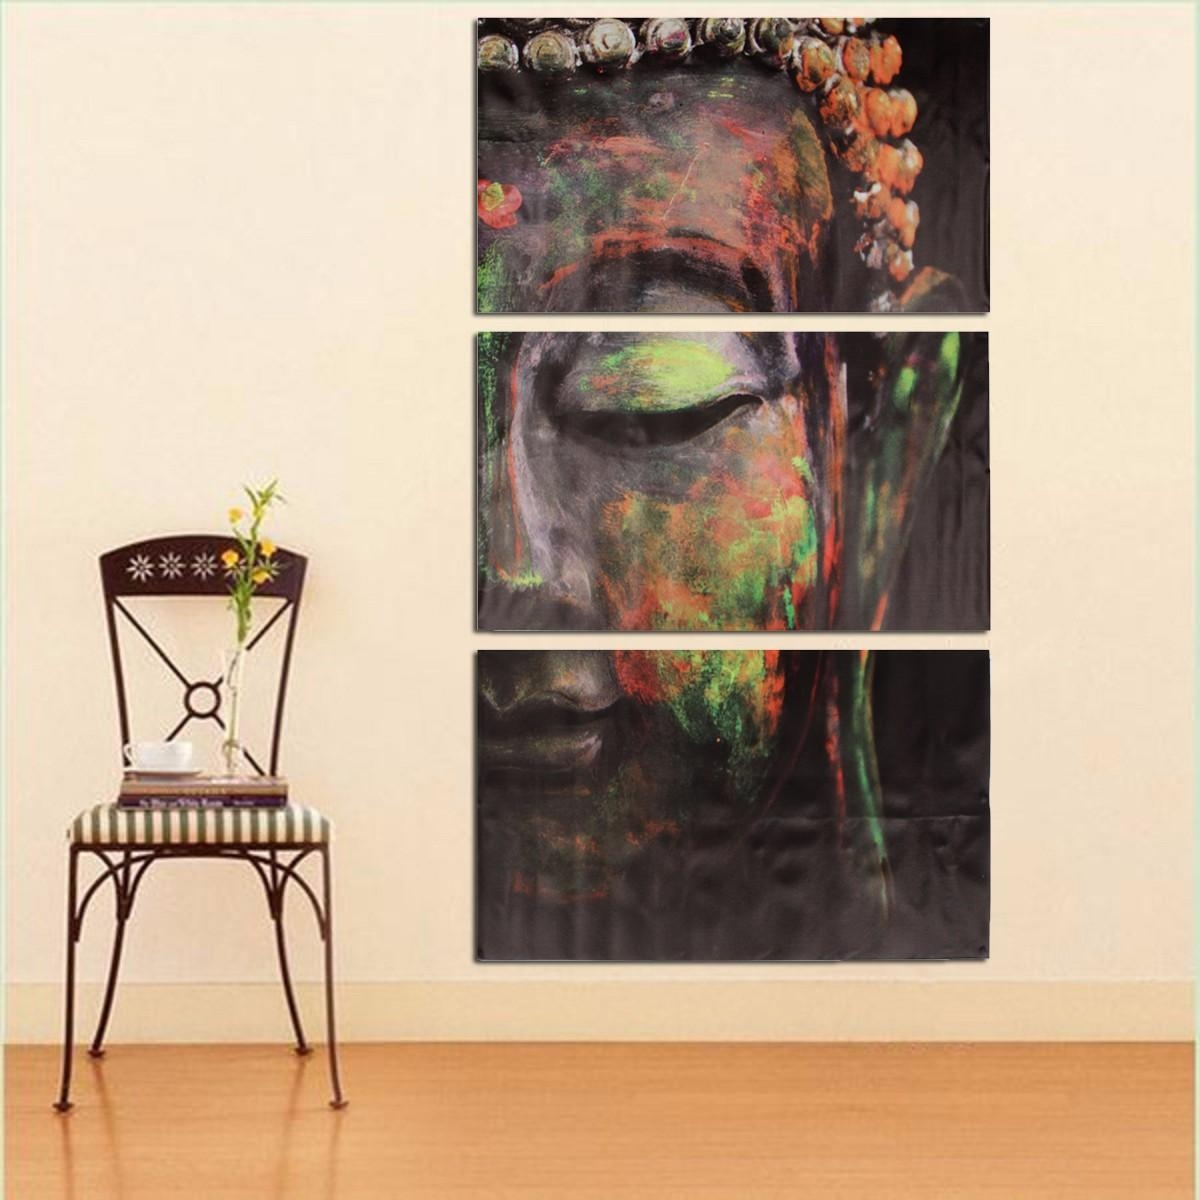 40X60Cm Buddha Statues Triple Frameless Canvas Prints Oil Painting Within Oil Painting Wall Art On Canvas (View 15 of 20)